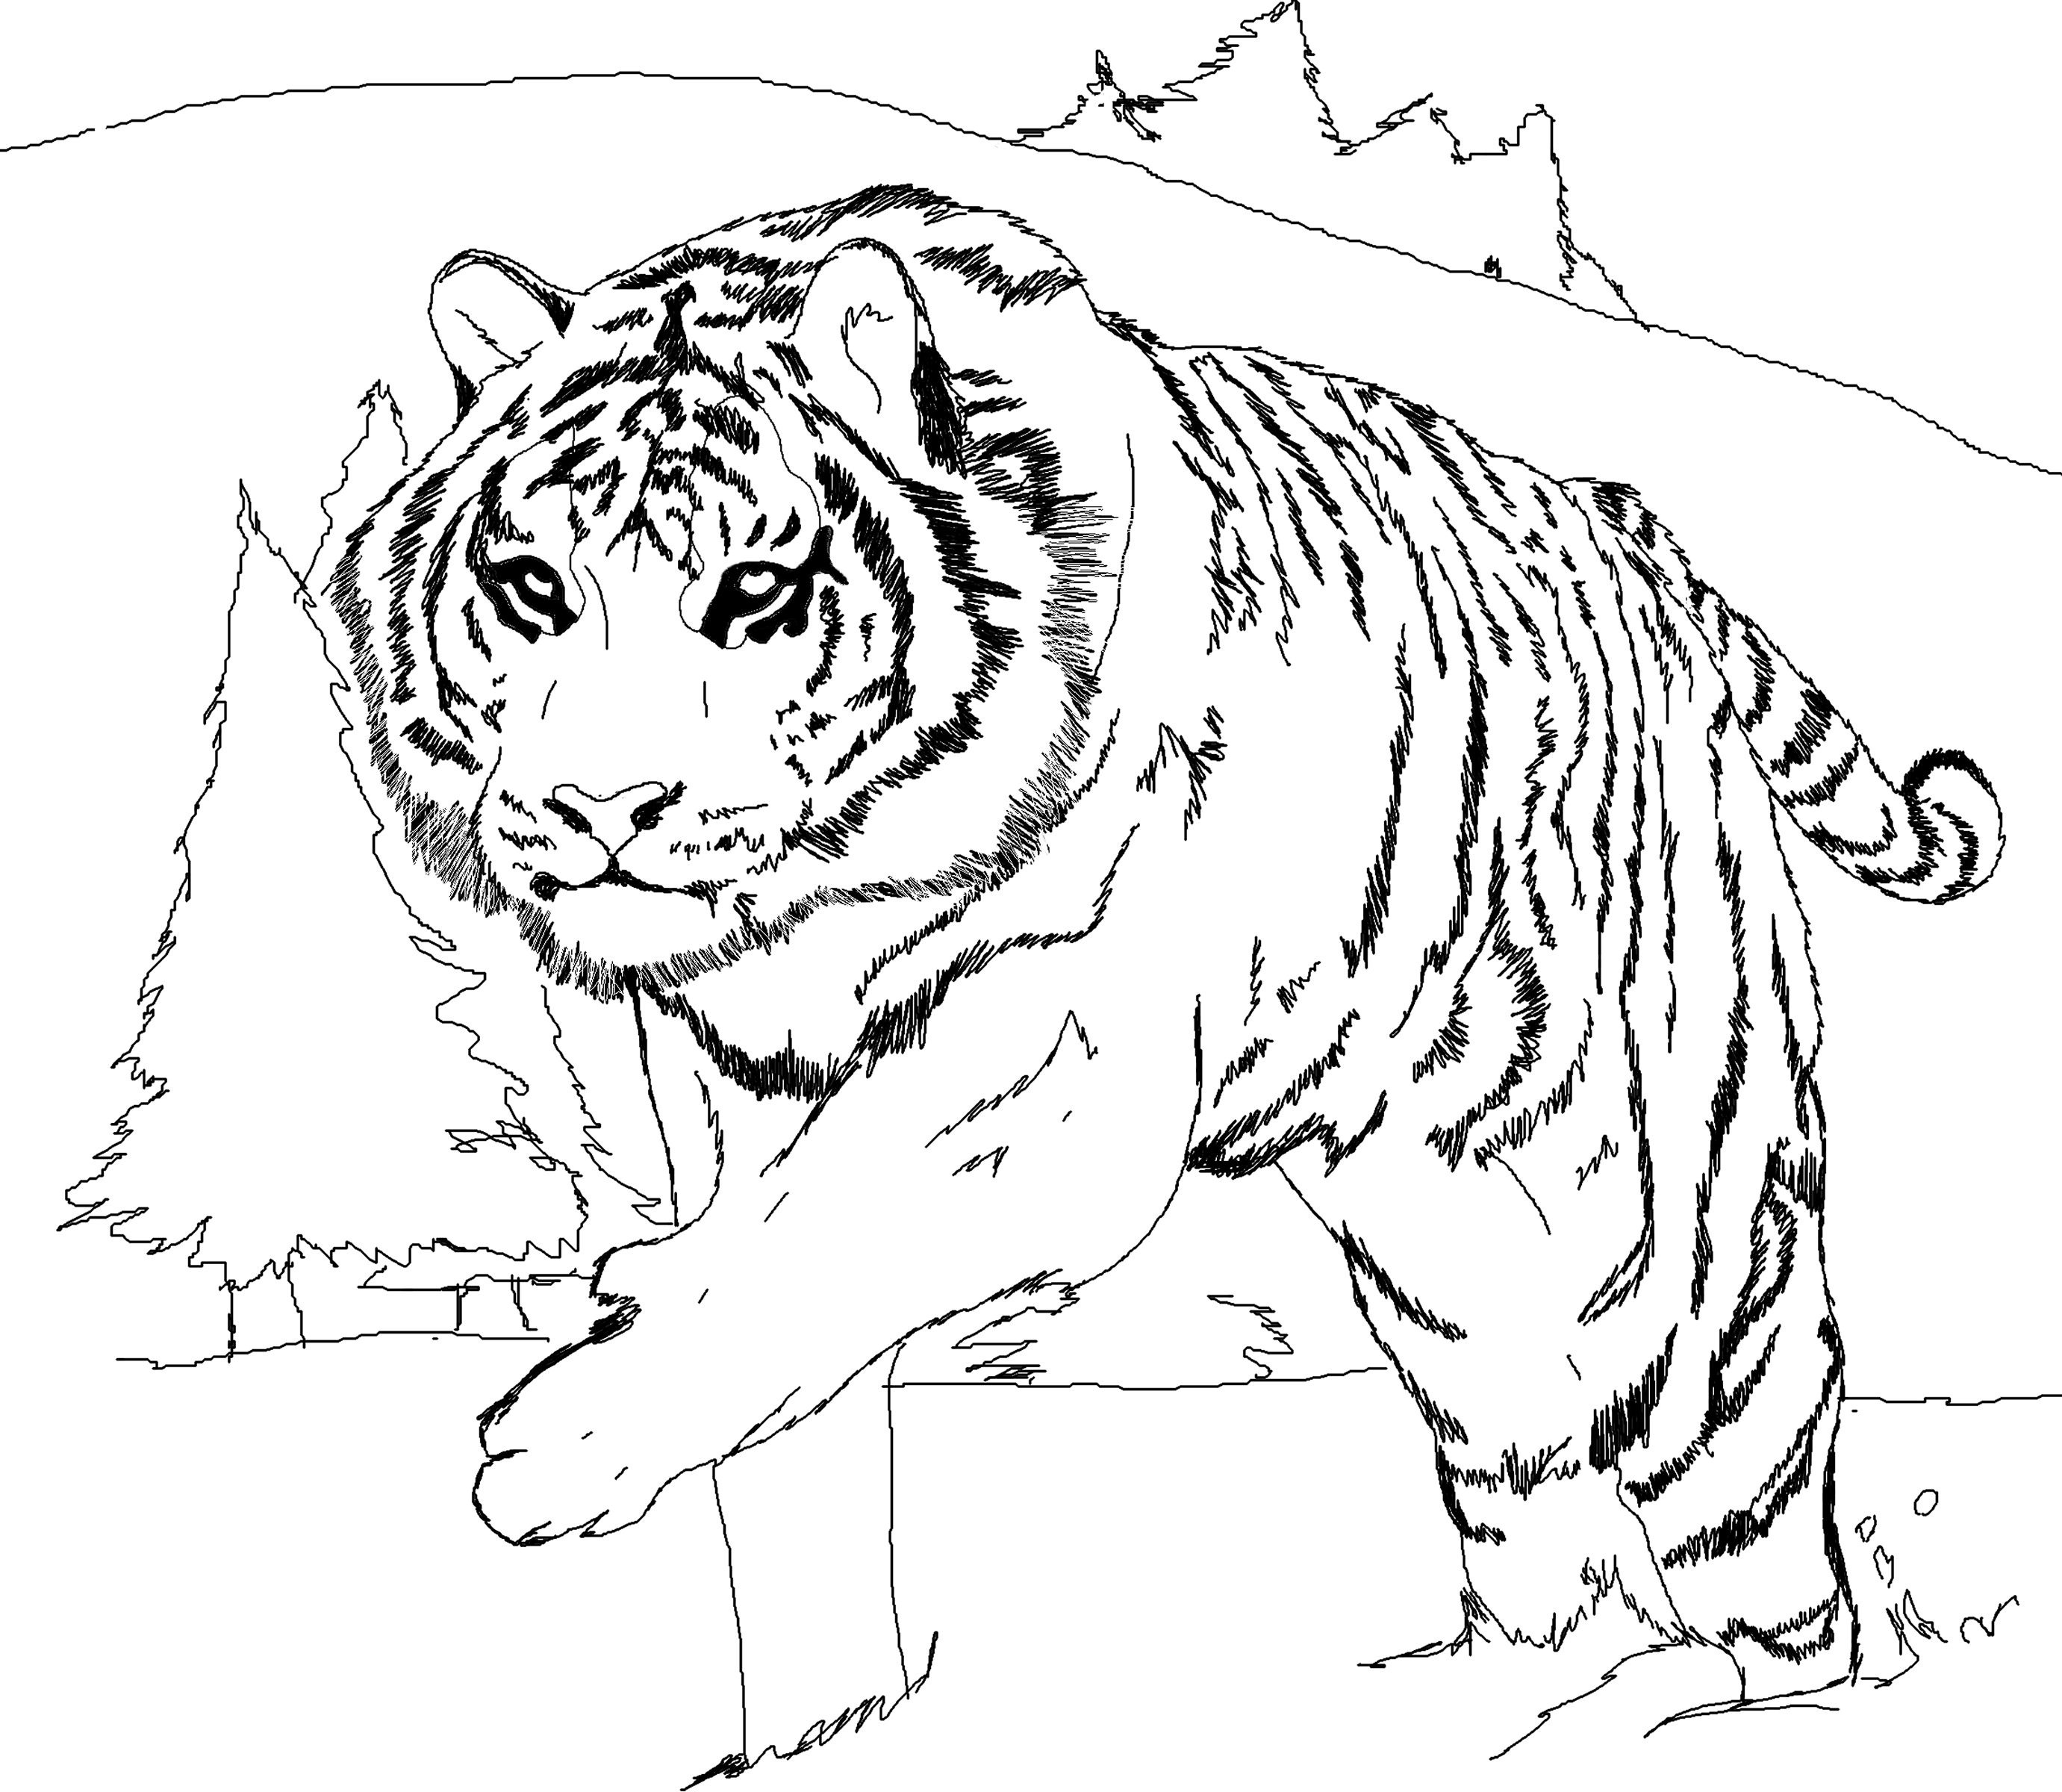 tiger colouring pictures free printable tiger coloring pages for kids tiger colouring pictures 1 1